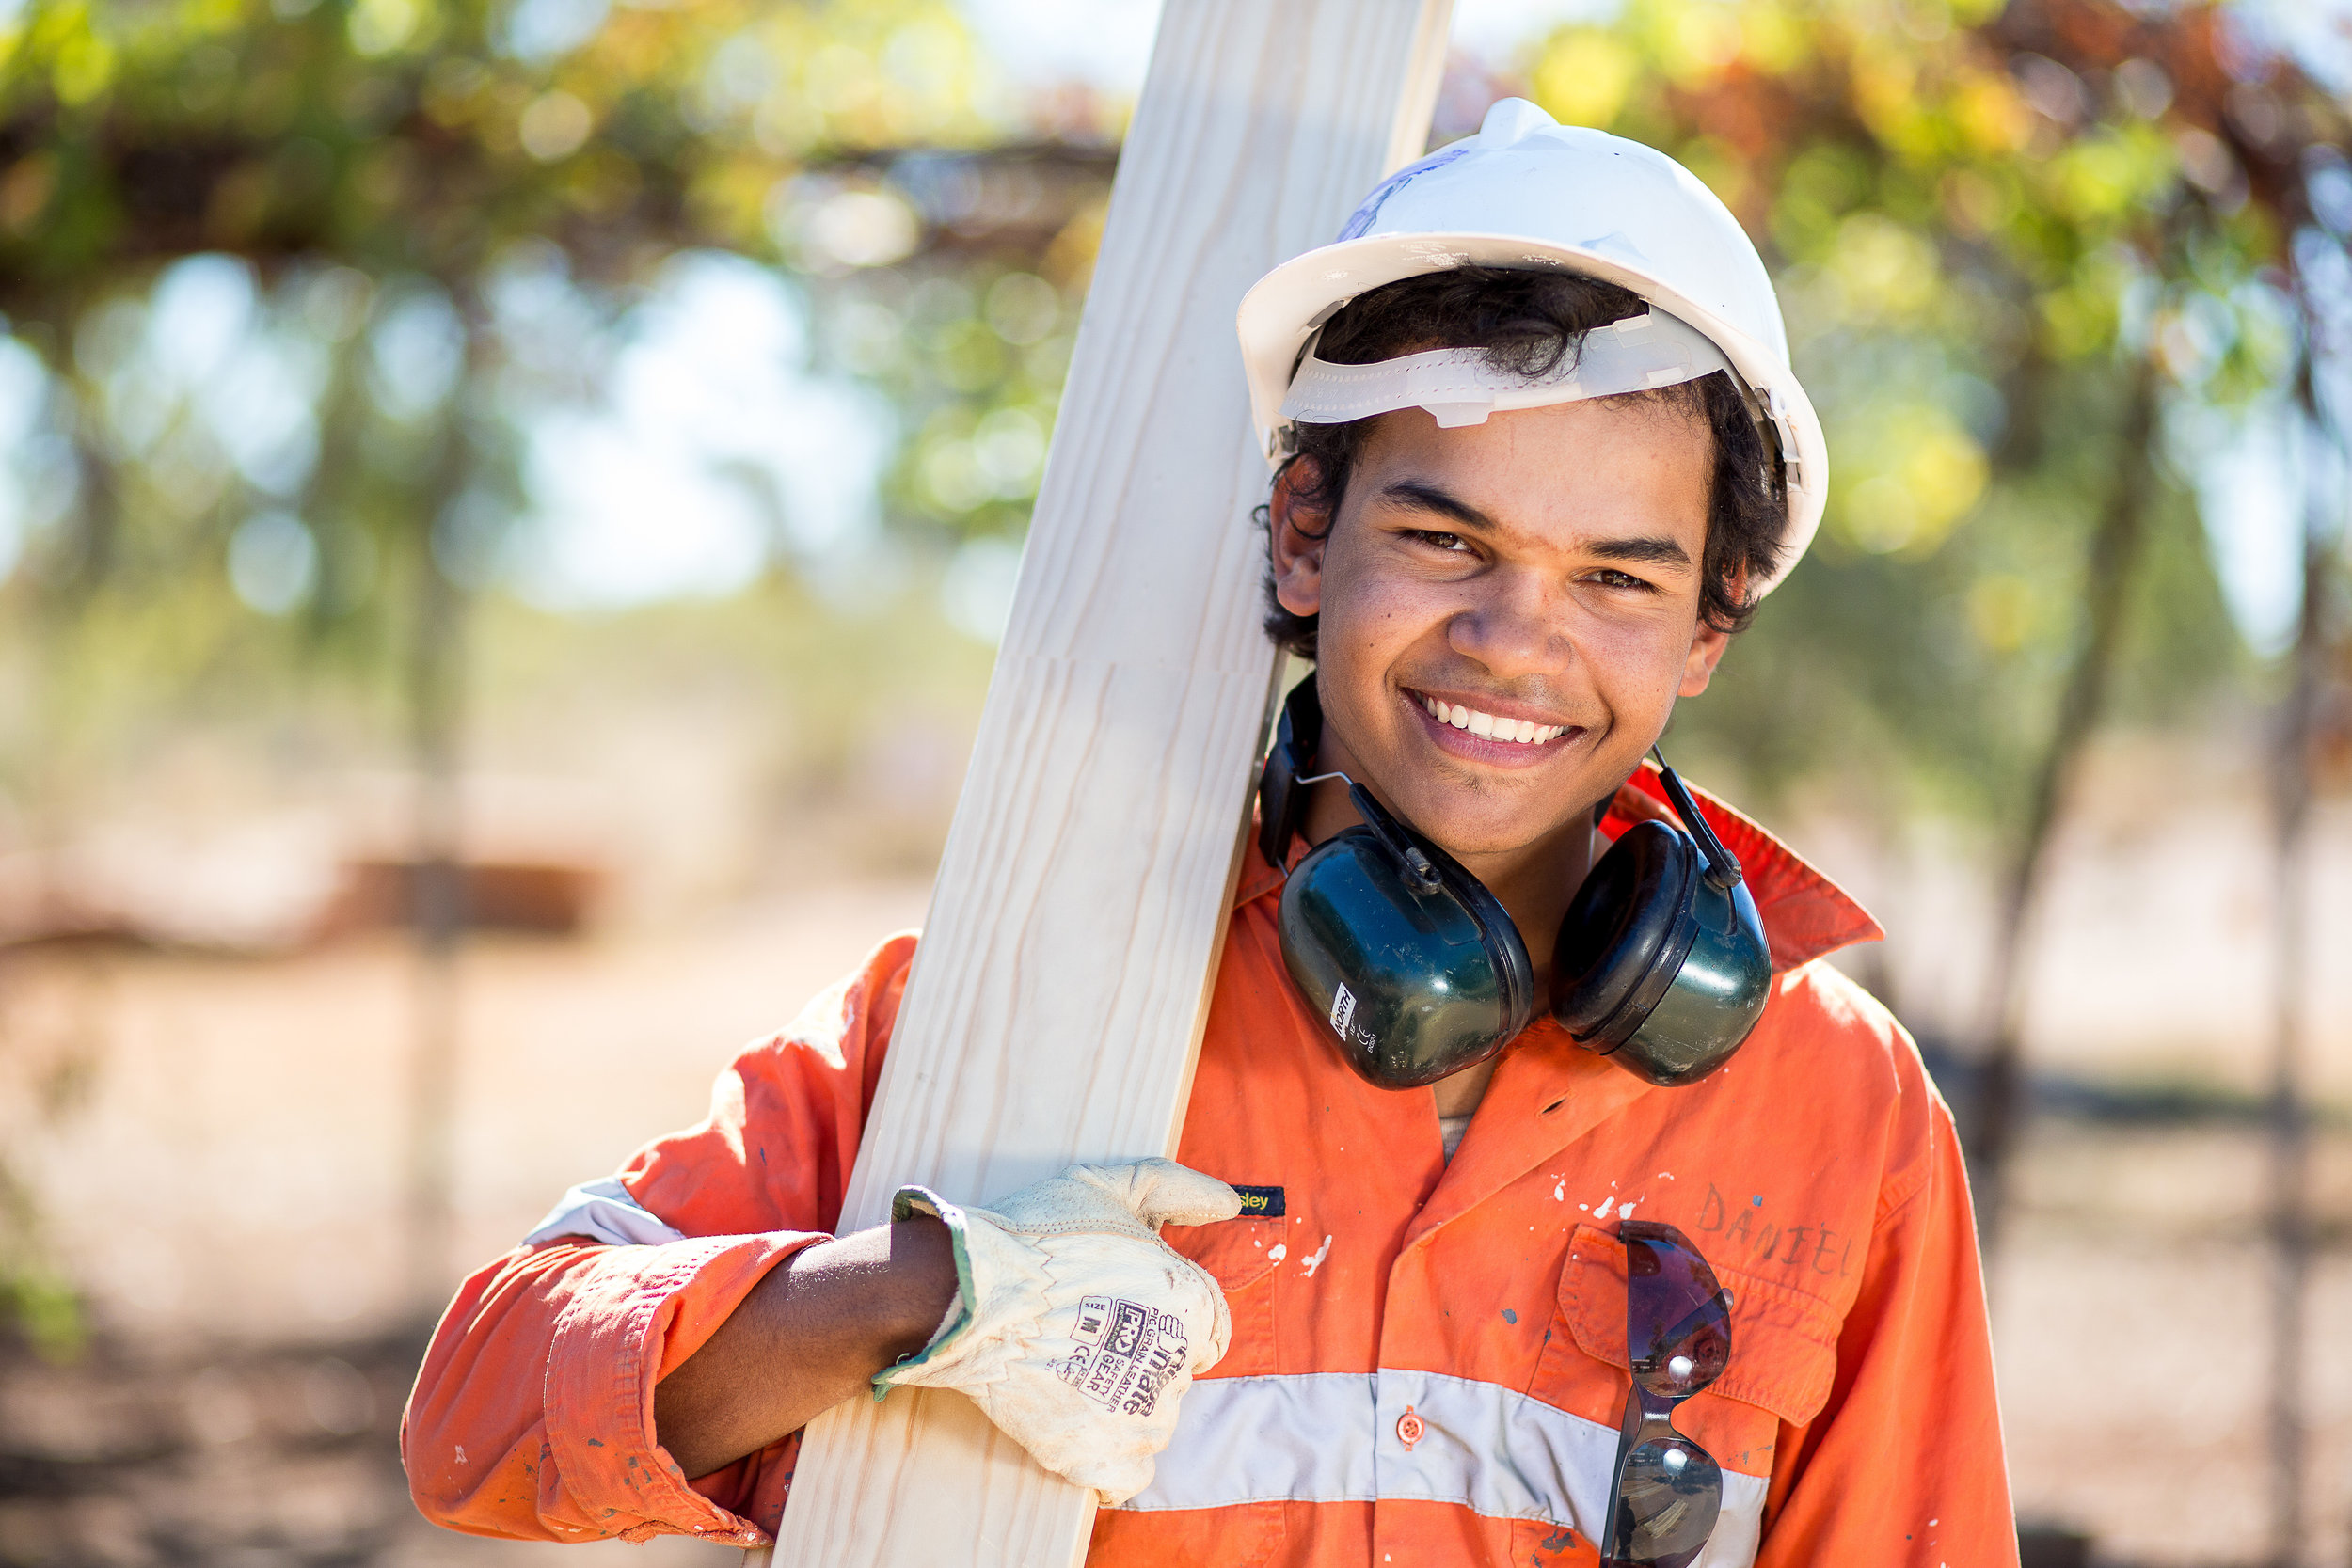 Indigenous Australian construction worker portrait showing young man wearing construction industry safety gear and holding wood